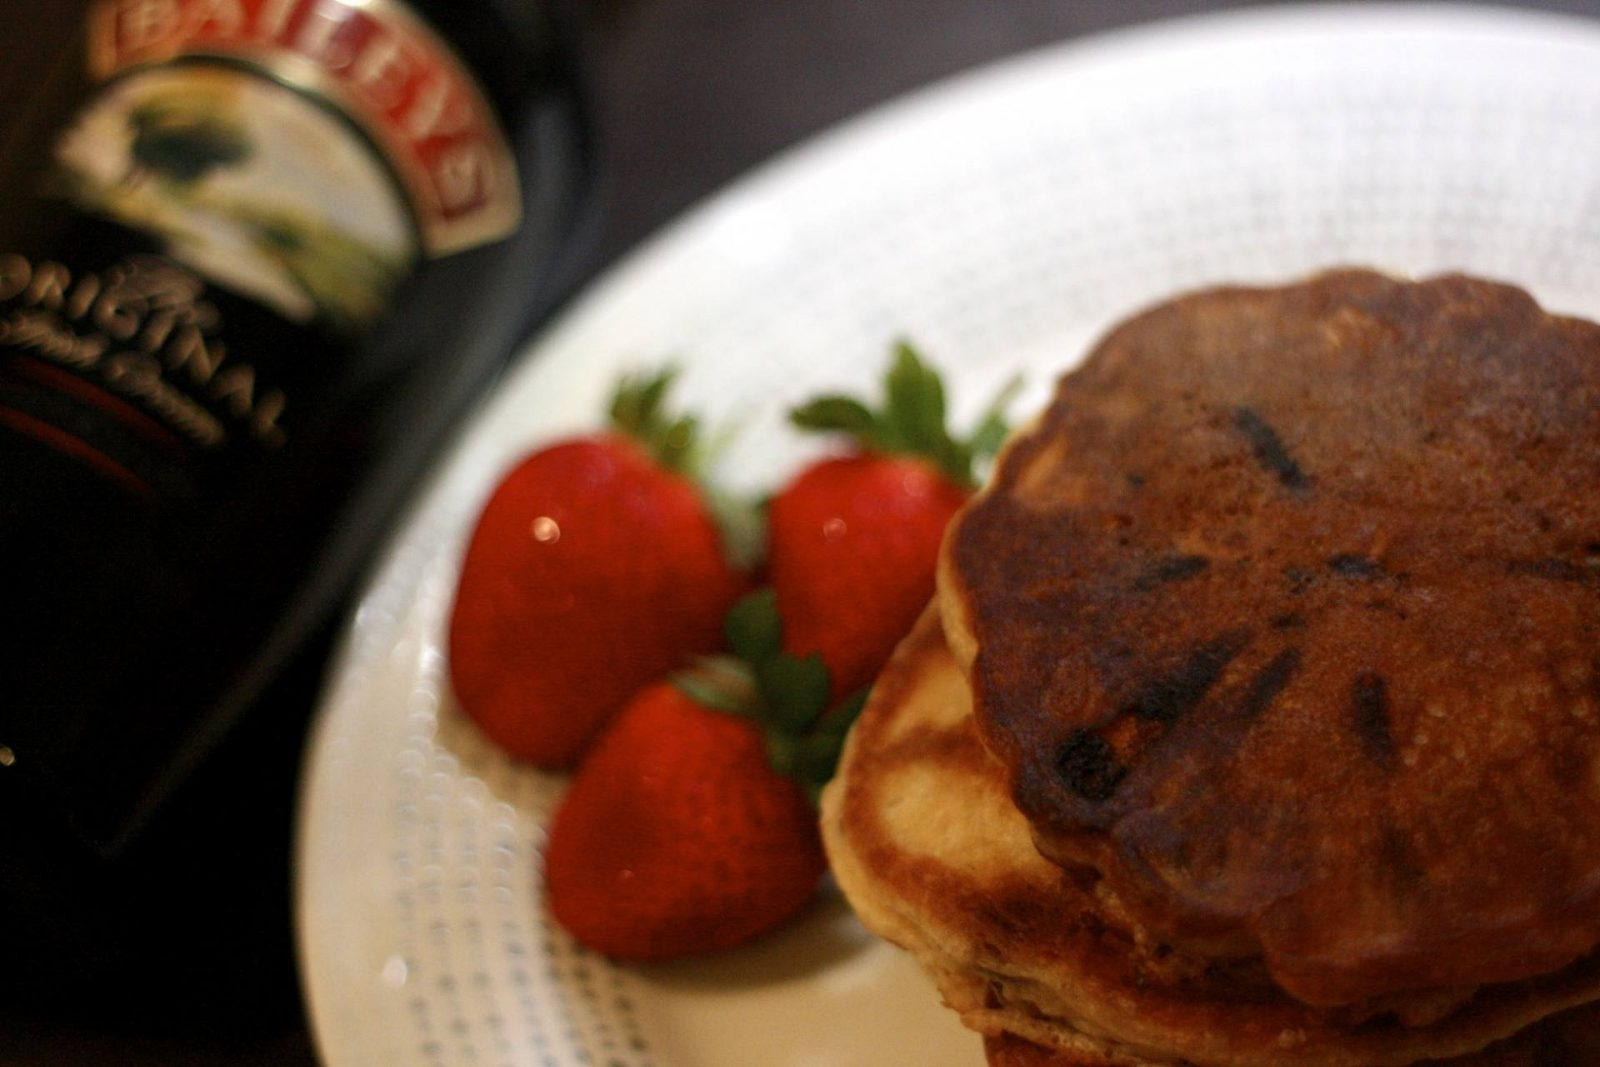 dubious home baking: boozy baileys chocolate chip pancakes;